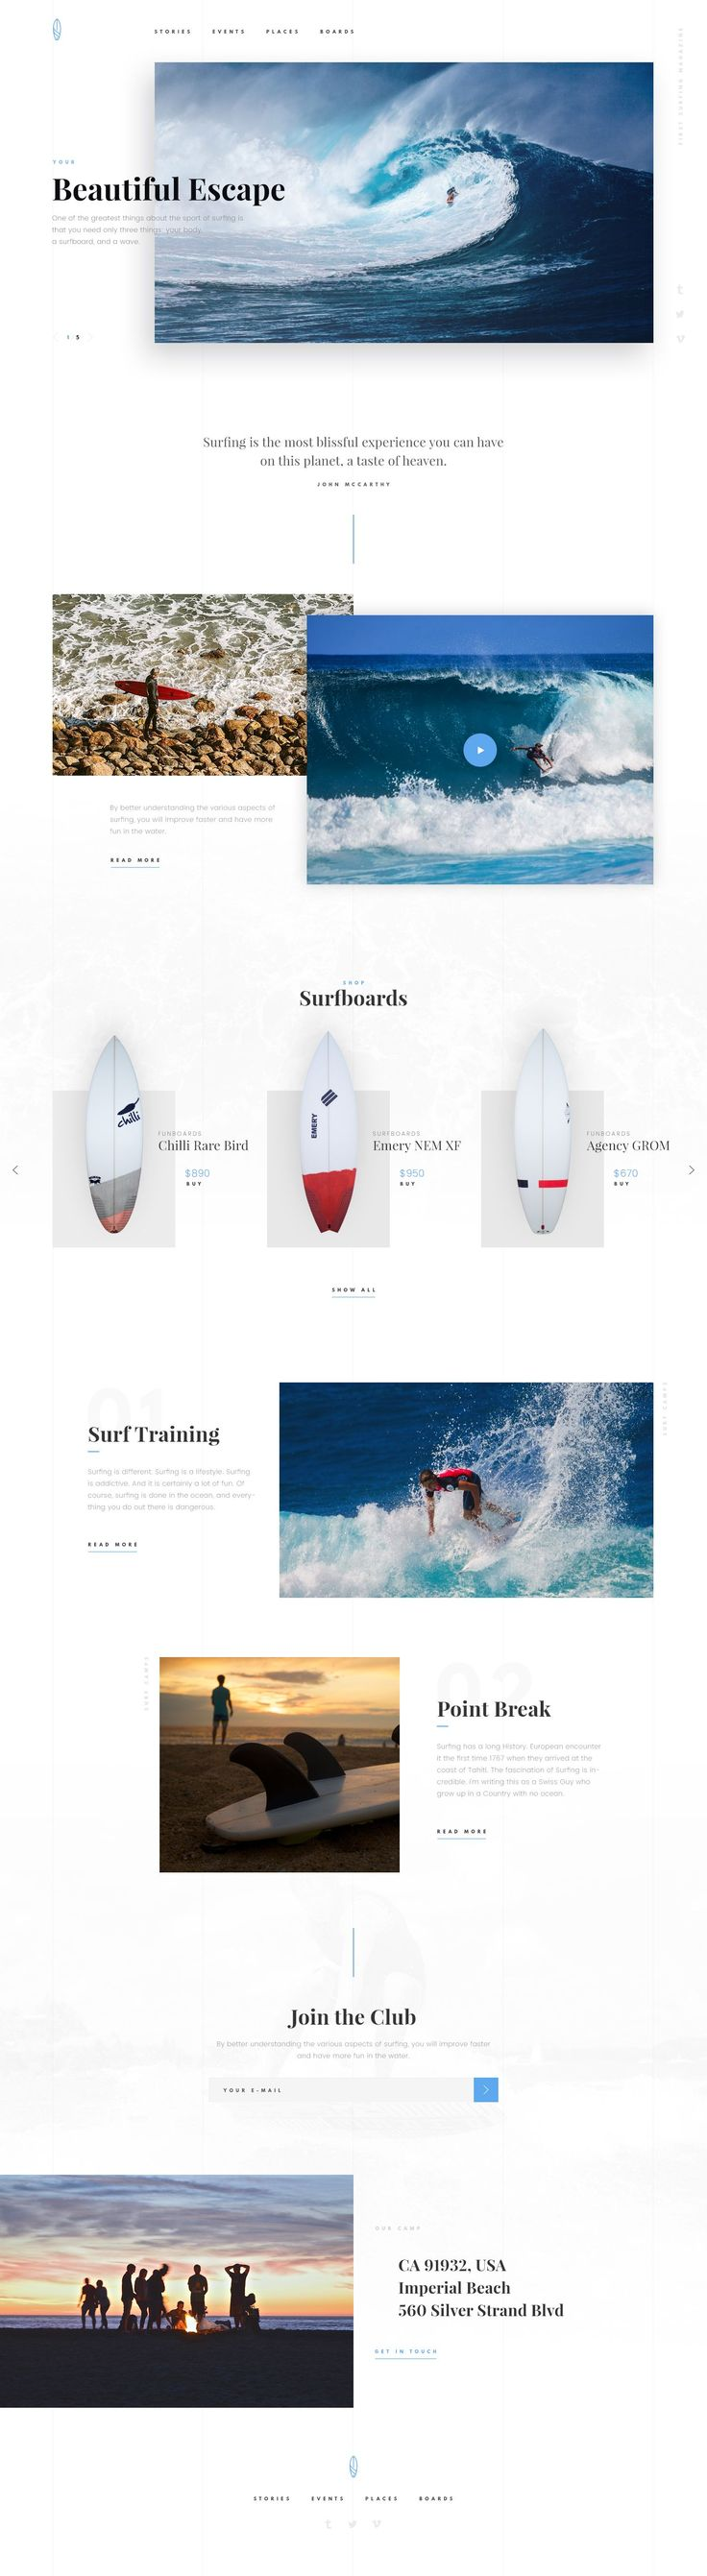 Surf website design with beautiful typography and layout.